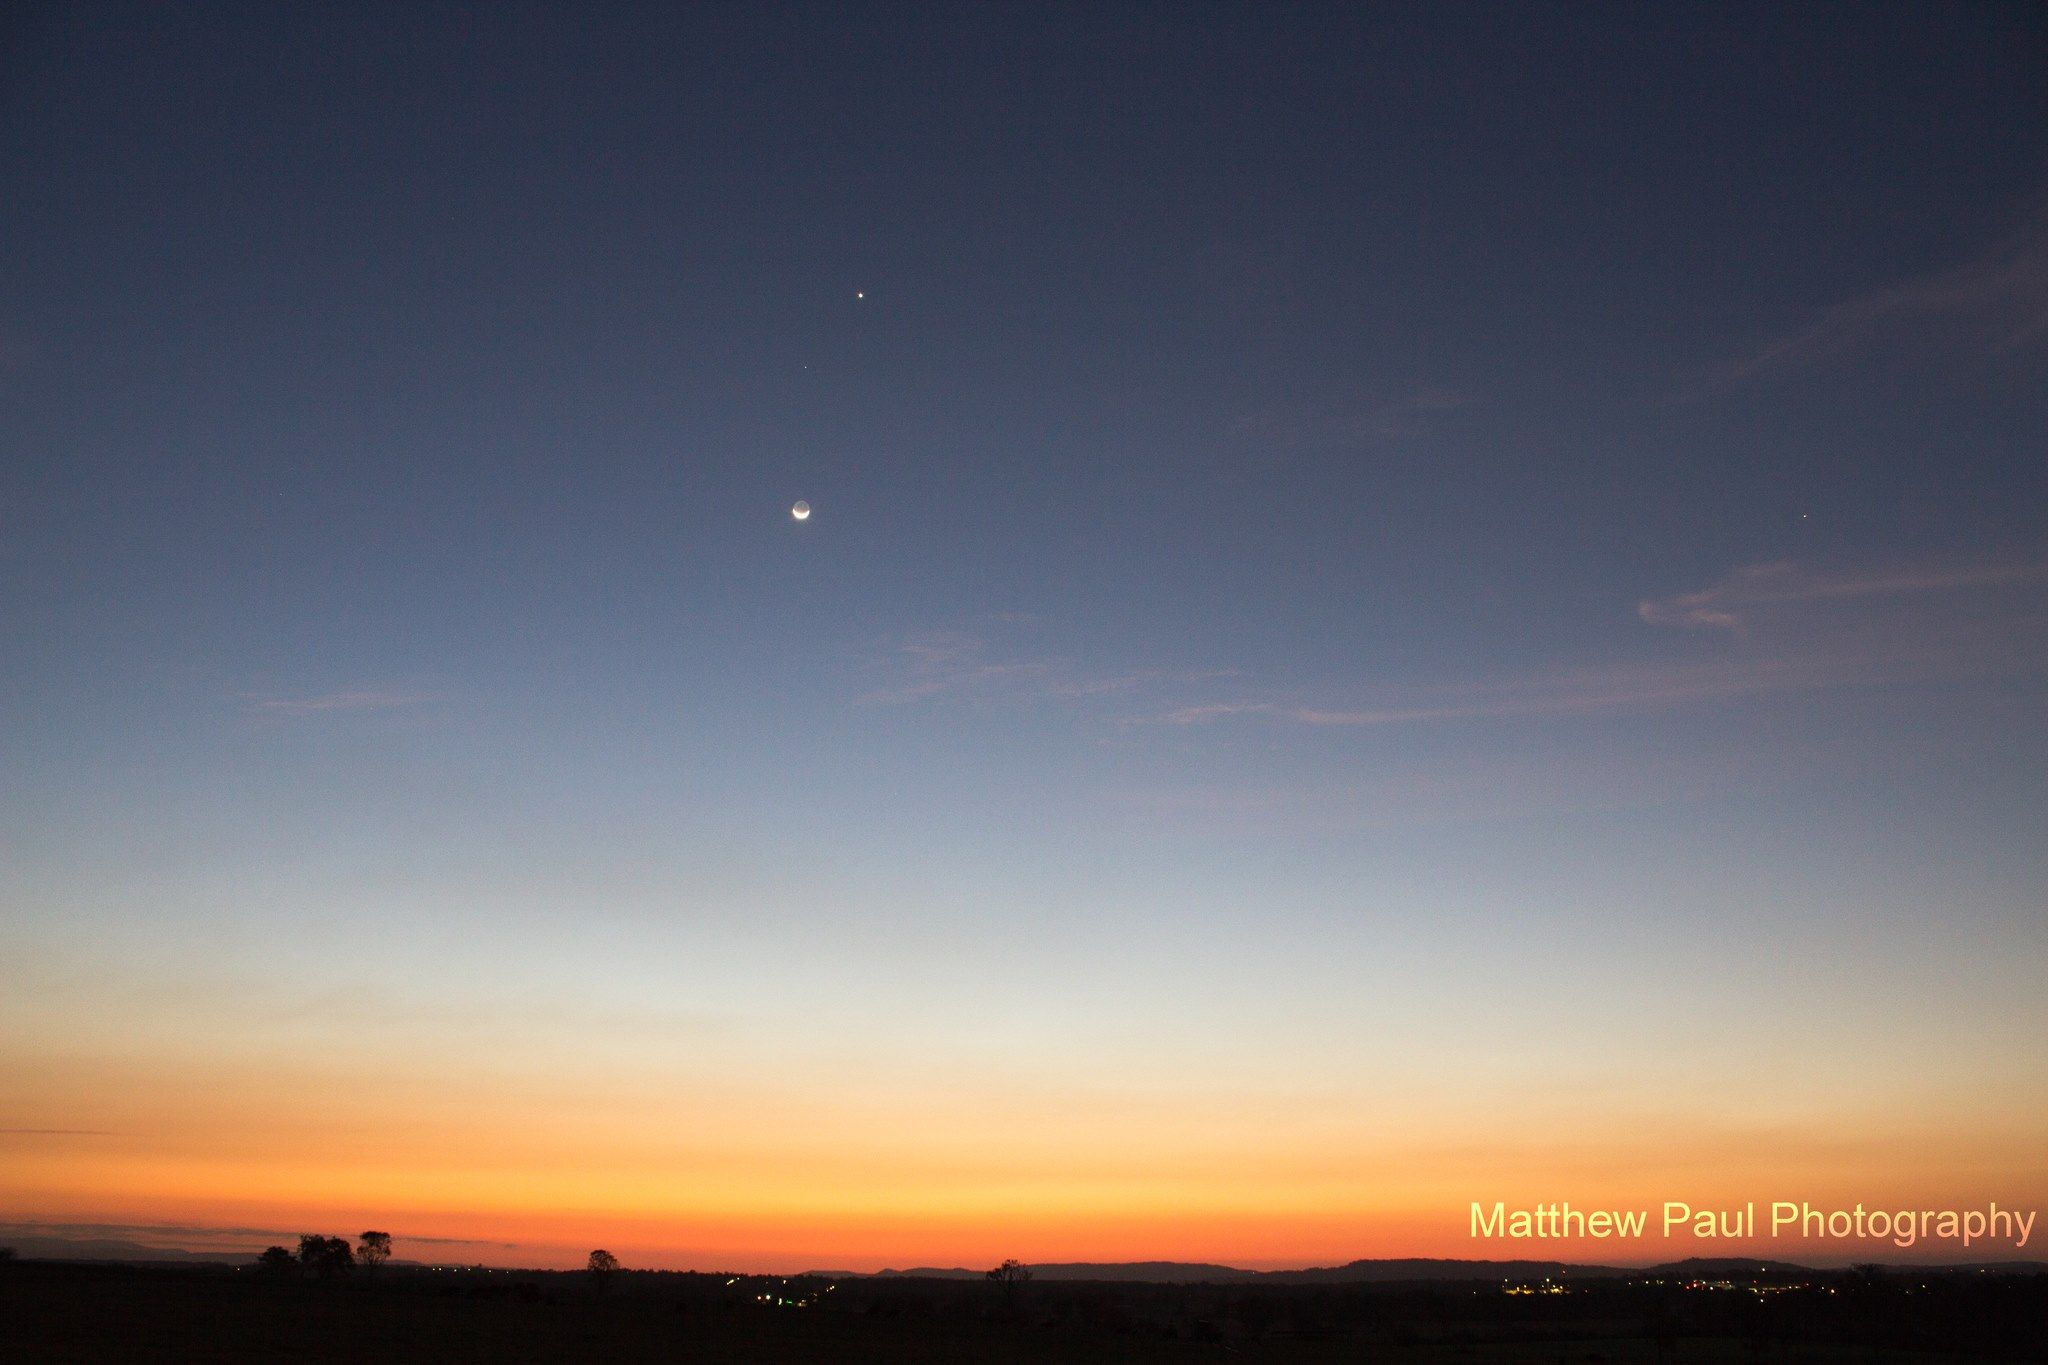 Young moon and Venus as seen Sunday, September 8, 2013 by EarthSky Facebook friend Matthew Paul Photography in Ipswich, Queensland, Australia. The moon was dramatically close to Venus that night, especially as seen from the Americas.  http://en.es-static.us/upl/2013/09/moon-venus-9-8-2013-Ipswich-Queensland-Australia-Matthew-Paul.jpg